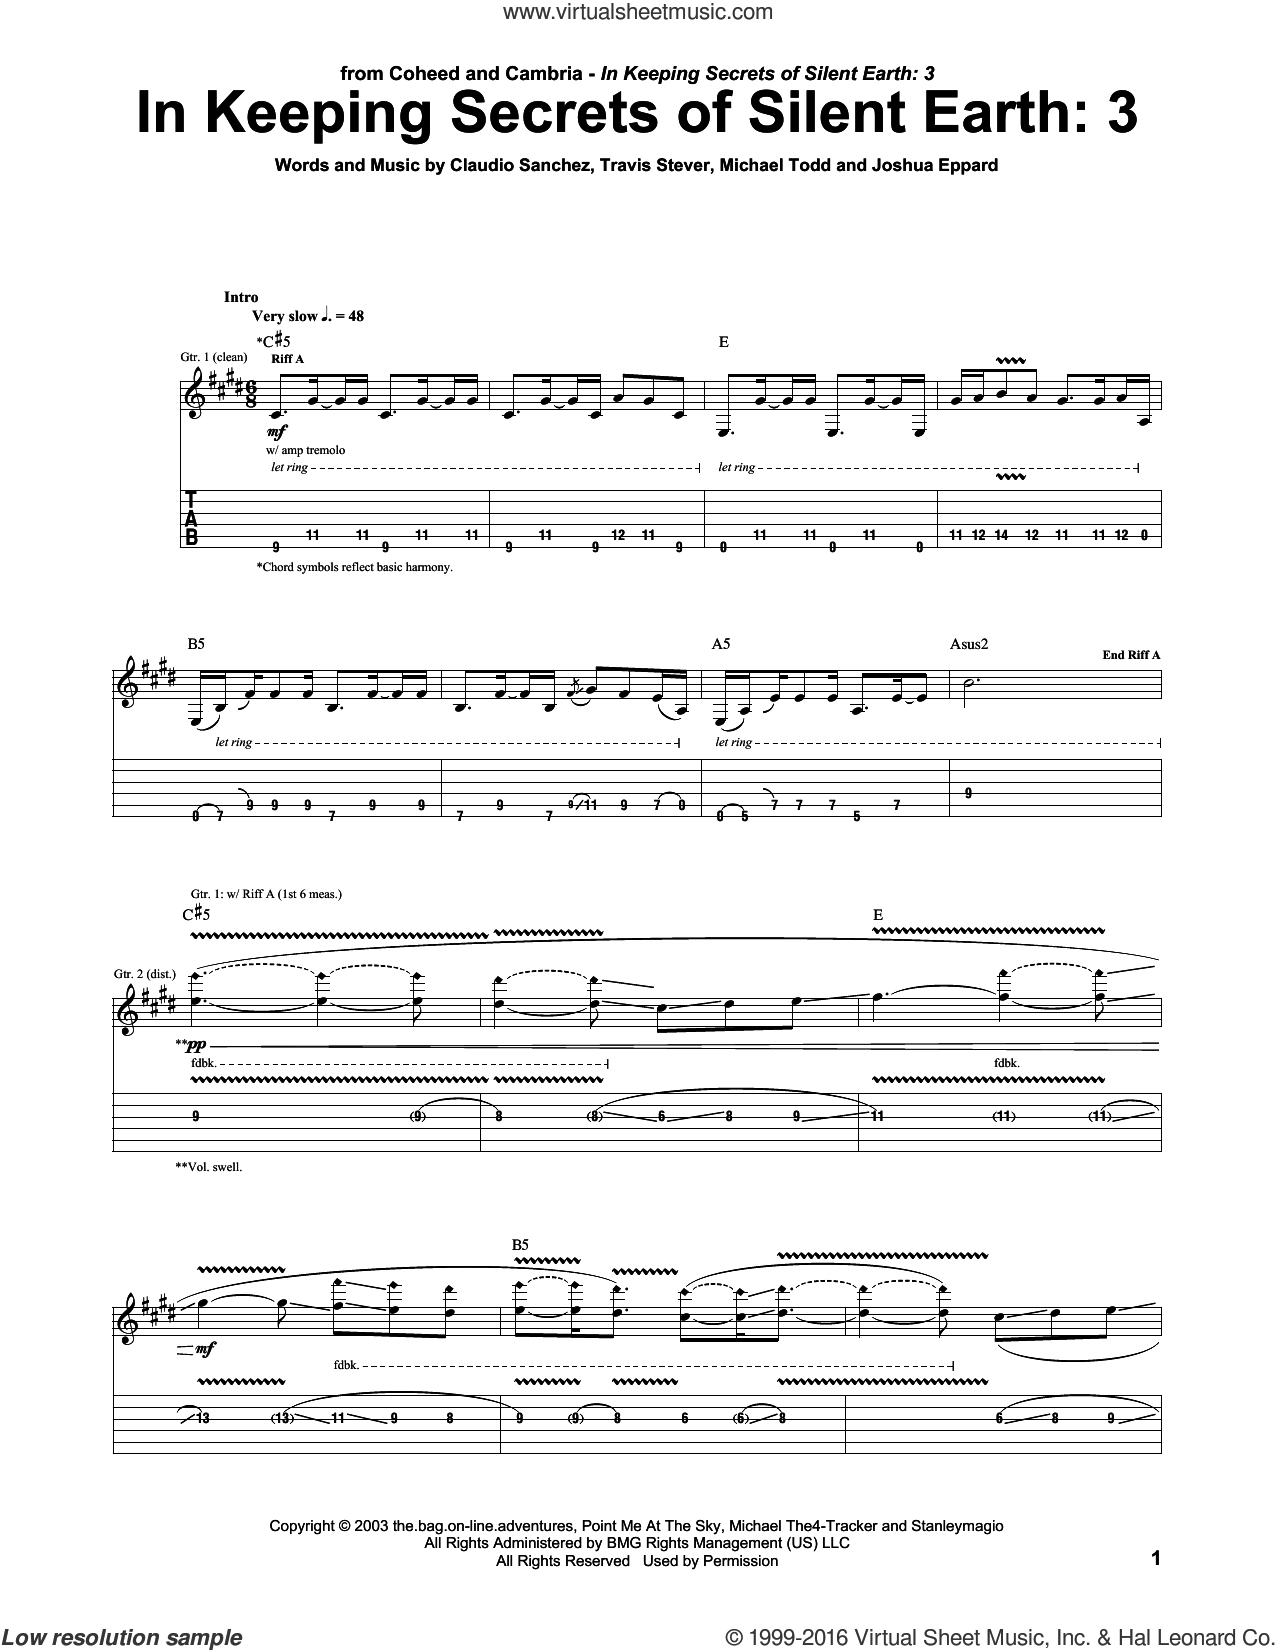 In Keeping Secrets Of Silent Earth: 3 sheet music for guitar (tablature) by Coheed And Cambria, Claudio Sanchez, Joshua Eppard, Michael Todd and Travis Stever, intermediate skill level